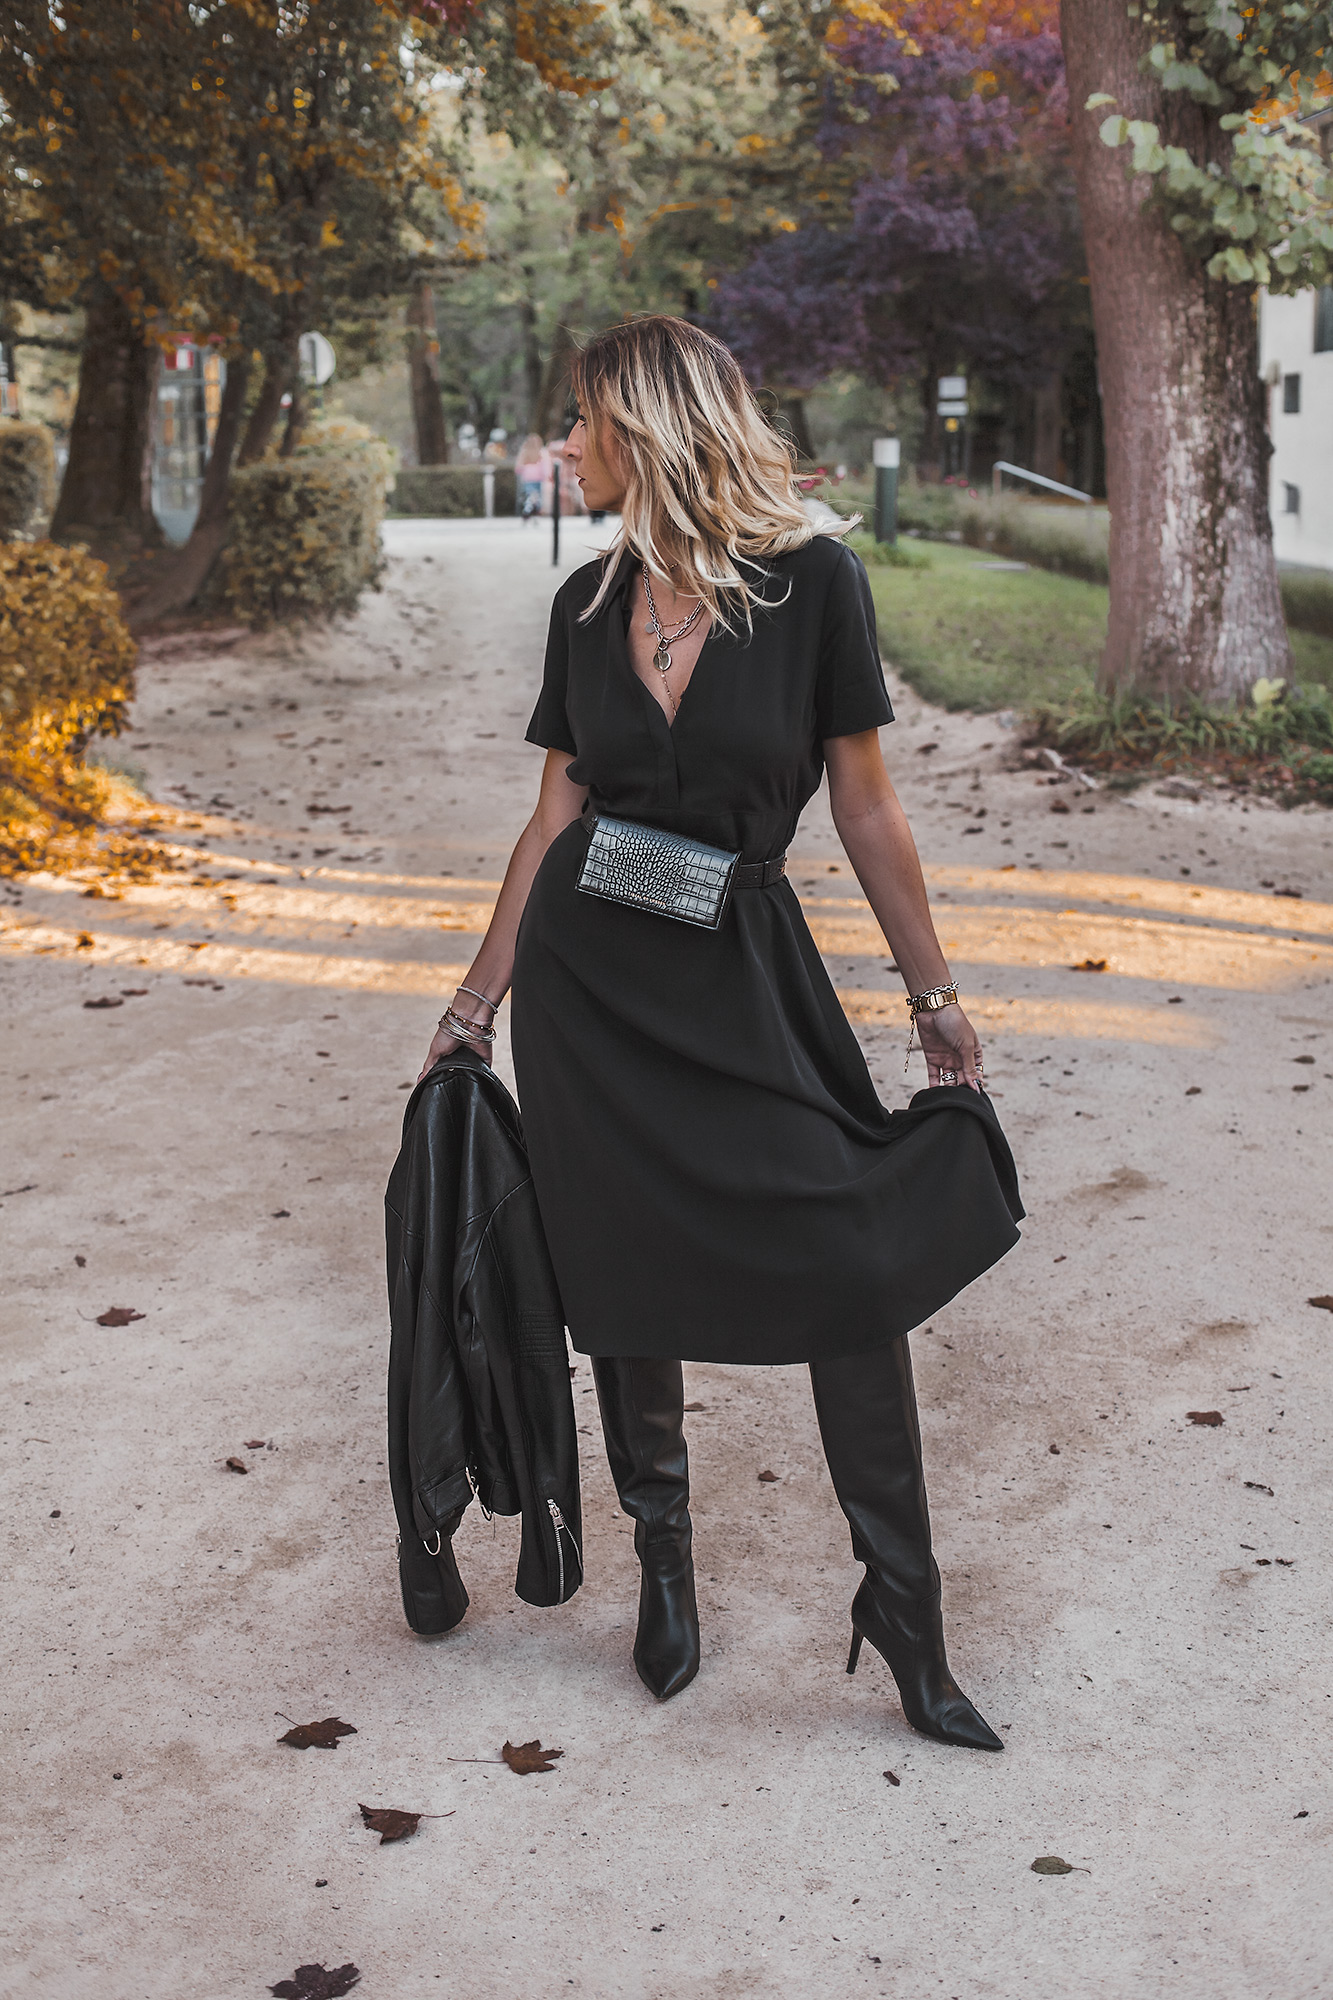 Black Dress, Black Slouchy leather Boots, Leather Jacket, Belt Bag. All Black Everything.